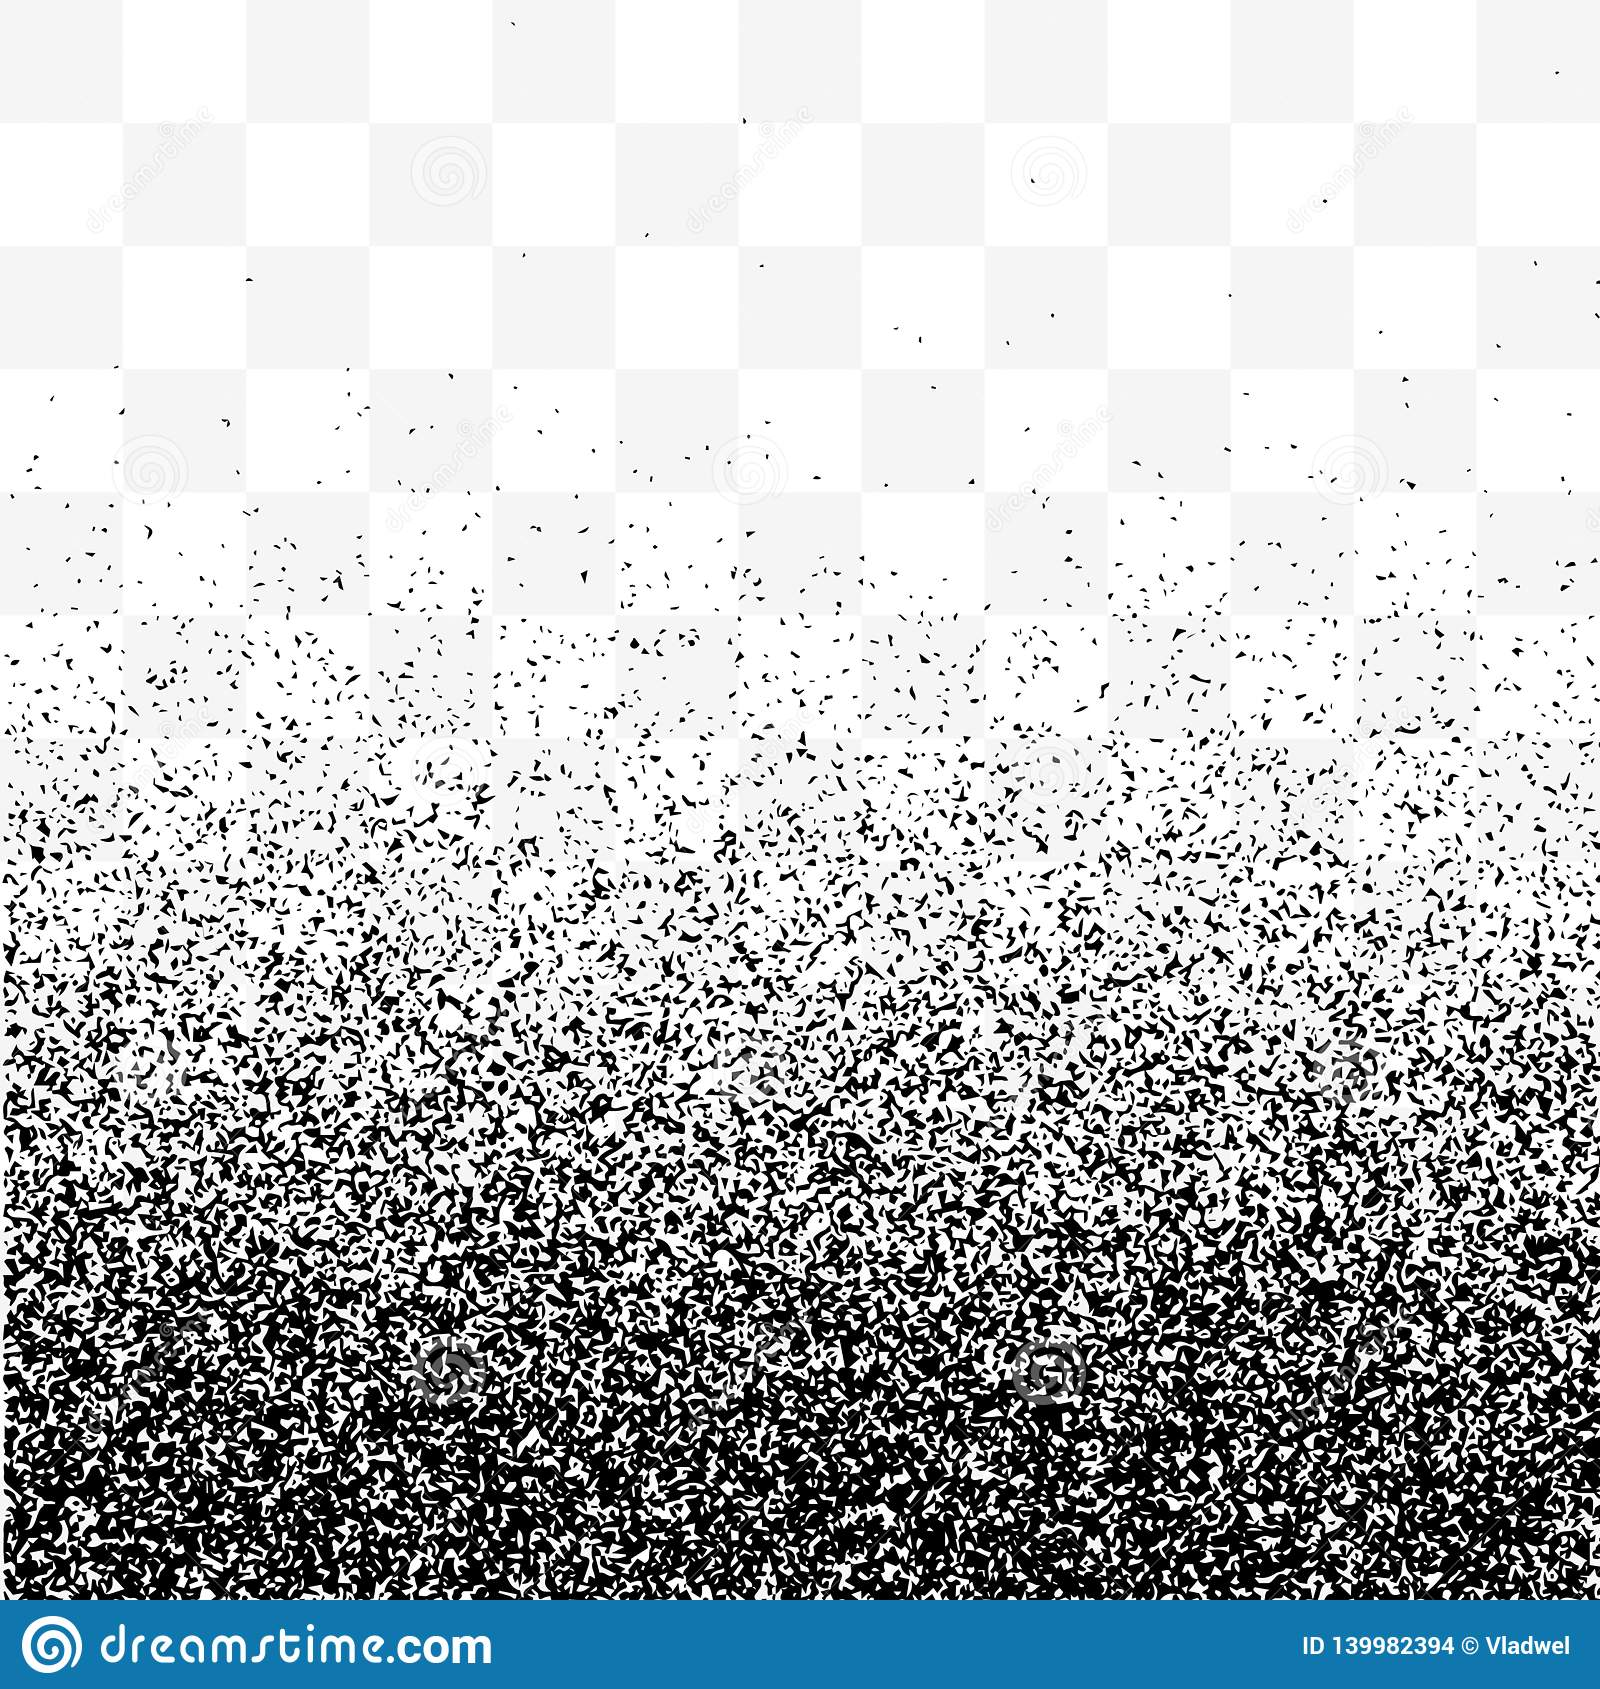 Grain Gradient Transparent Background, Black And White Old